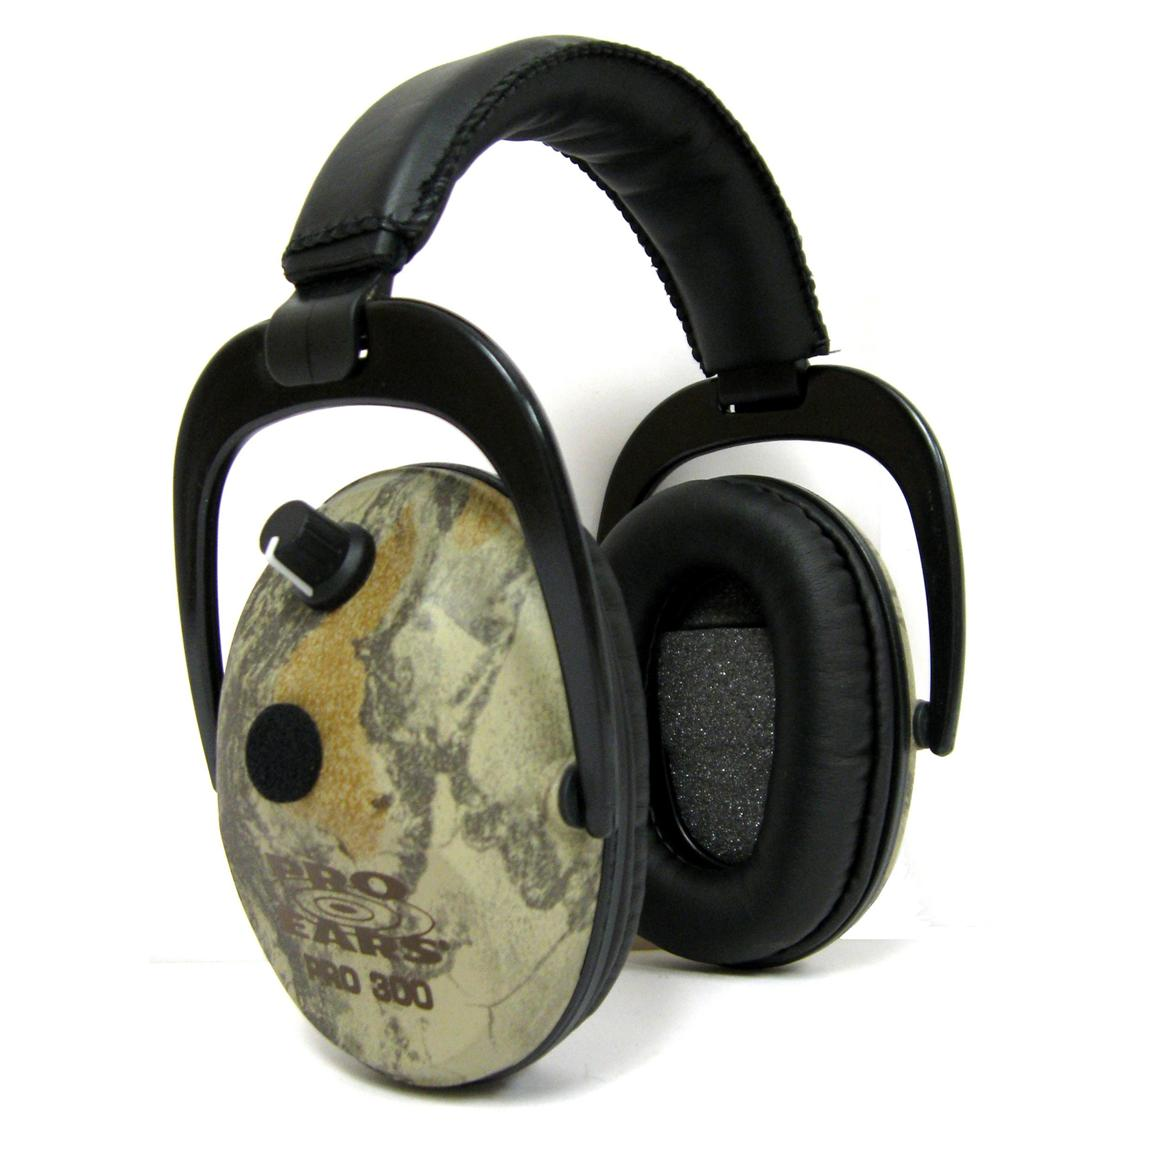 Pro Ears® Camo Pro 300 Hearing Protection and Amplification Ear Muffs, Camo